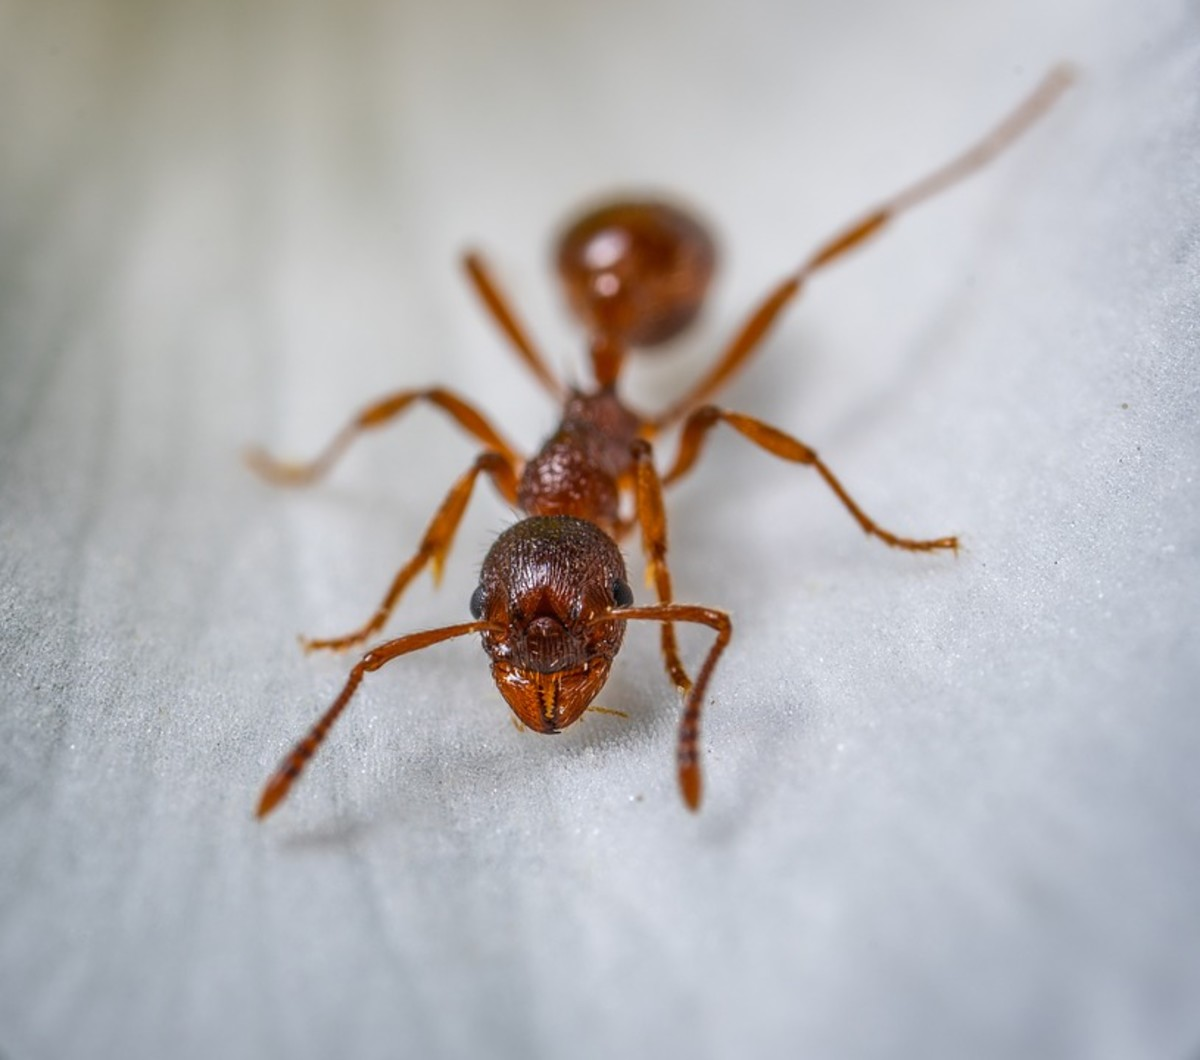 The Lifespan of the Most Common Ant Species